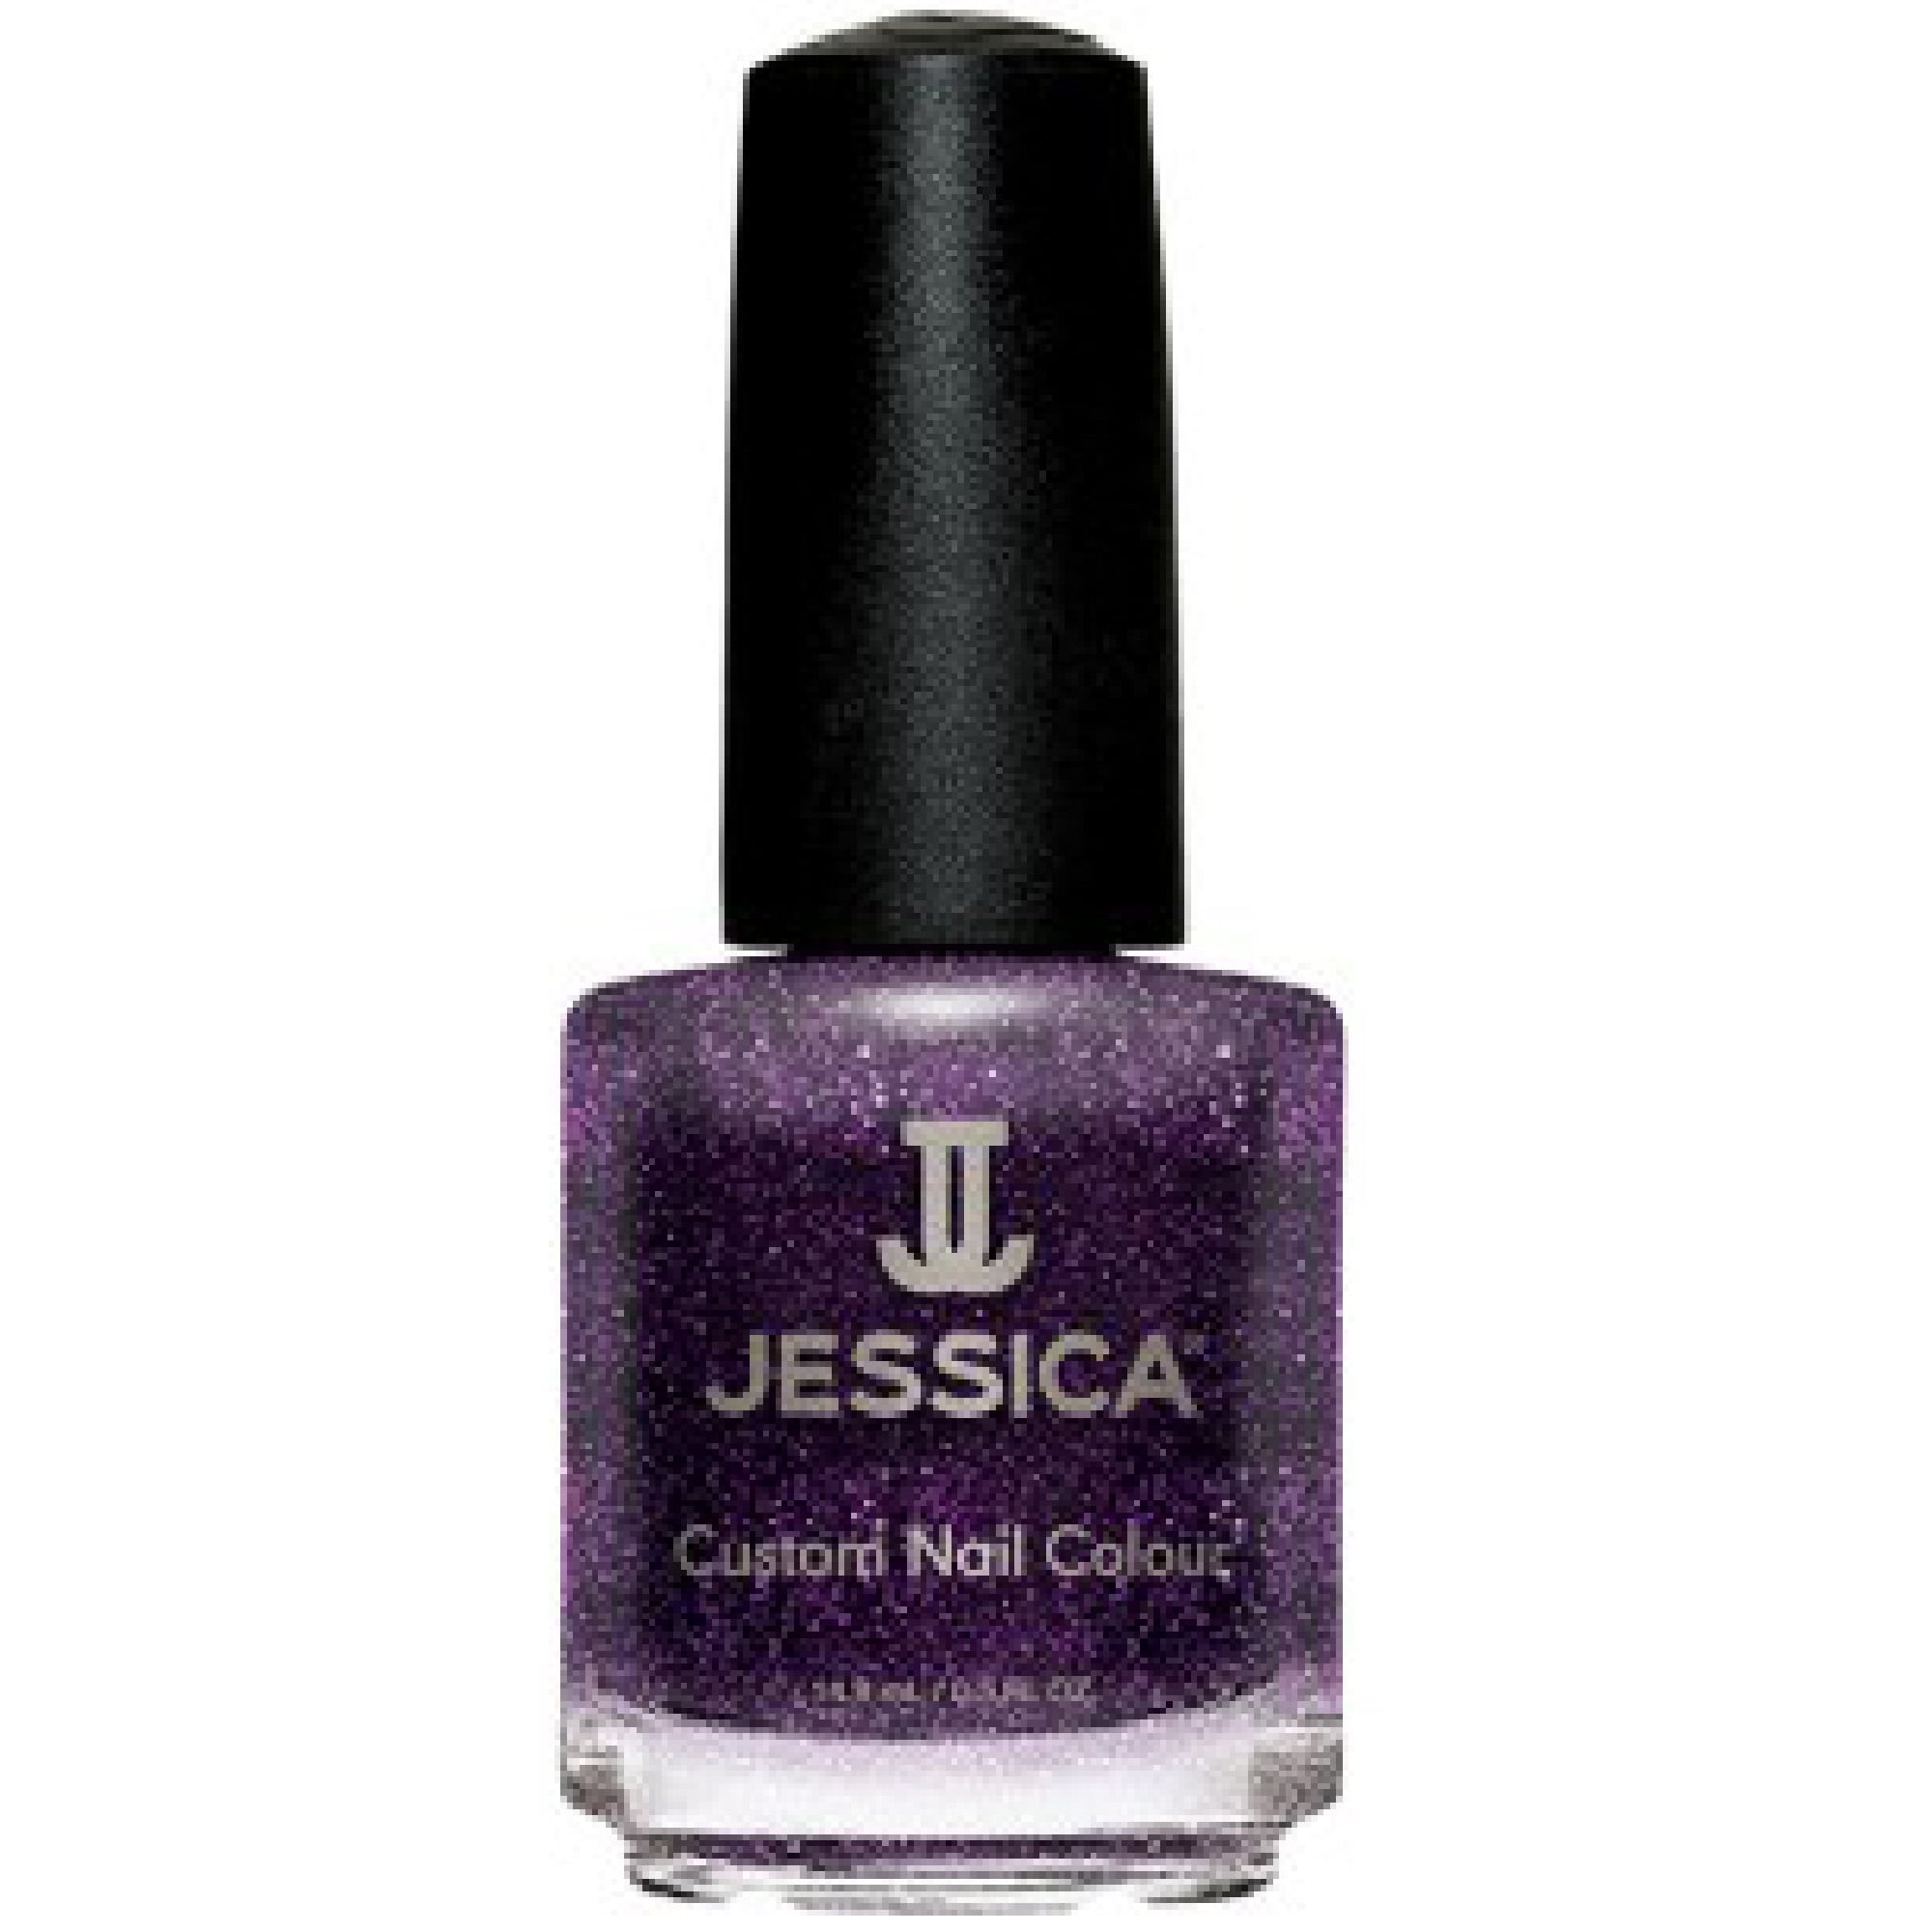 Removing dried nail polish from carpet - Slip Into Sparkles 2017 Nail Polish Collection Dazzling Diva 1153 14 8ml